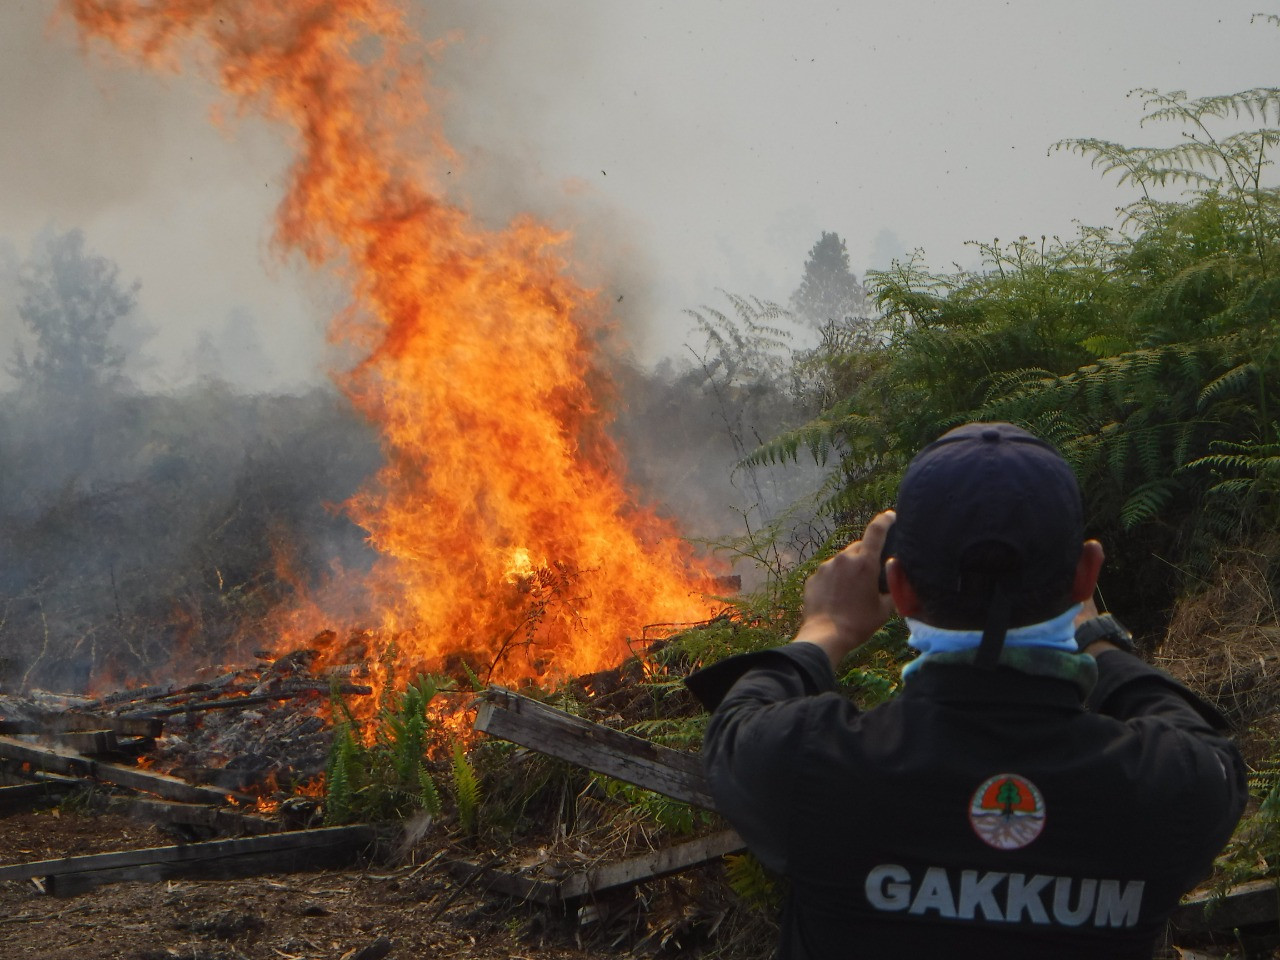 Beyond swidden agriculture: Rethinking approach to fires